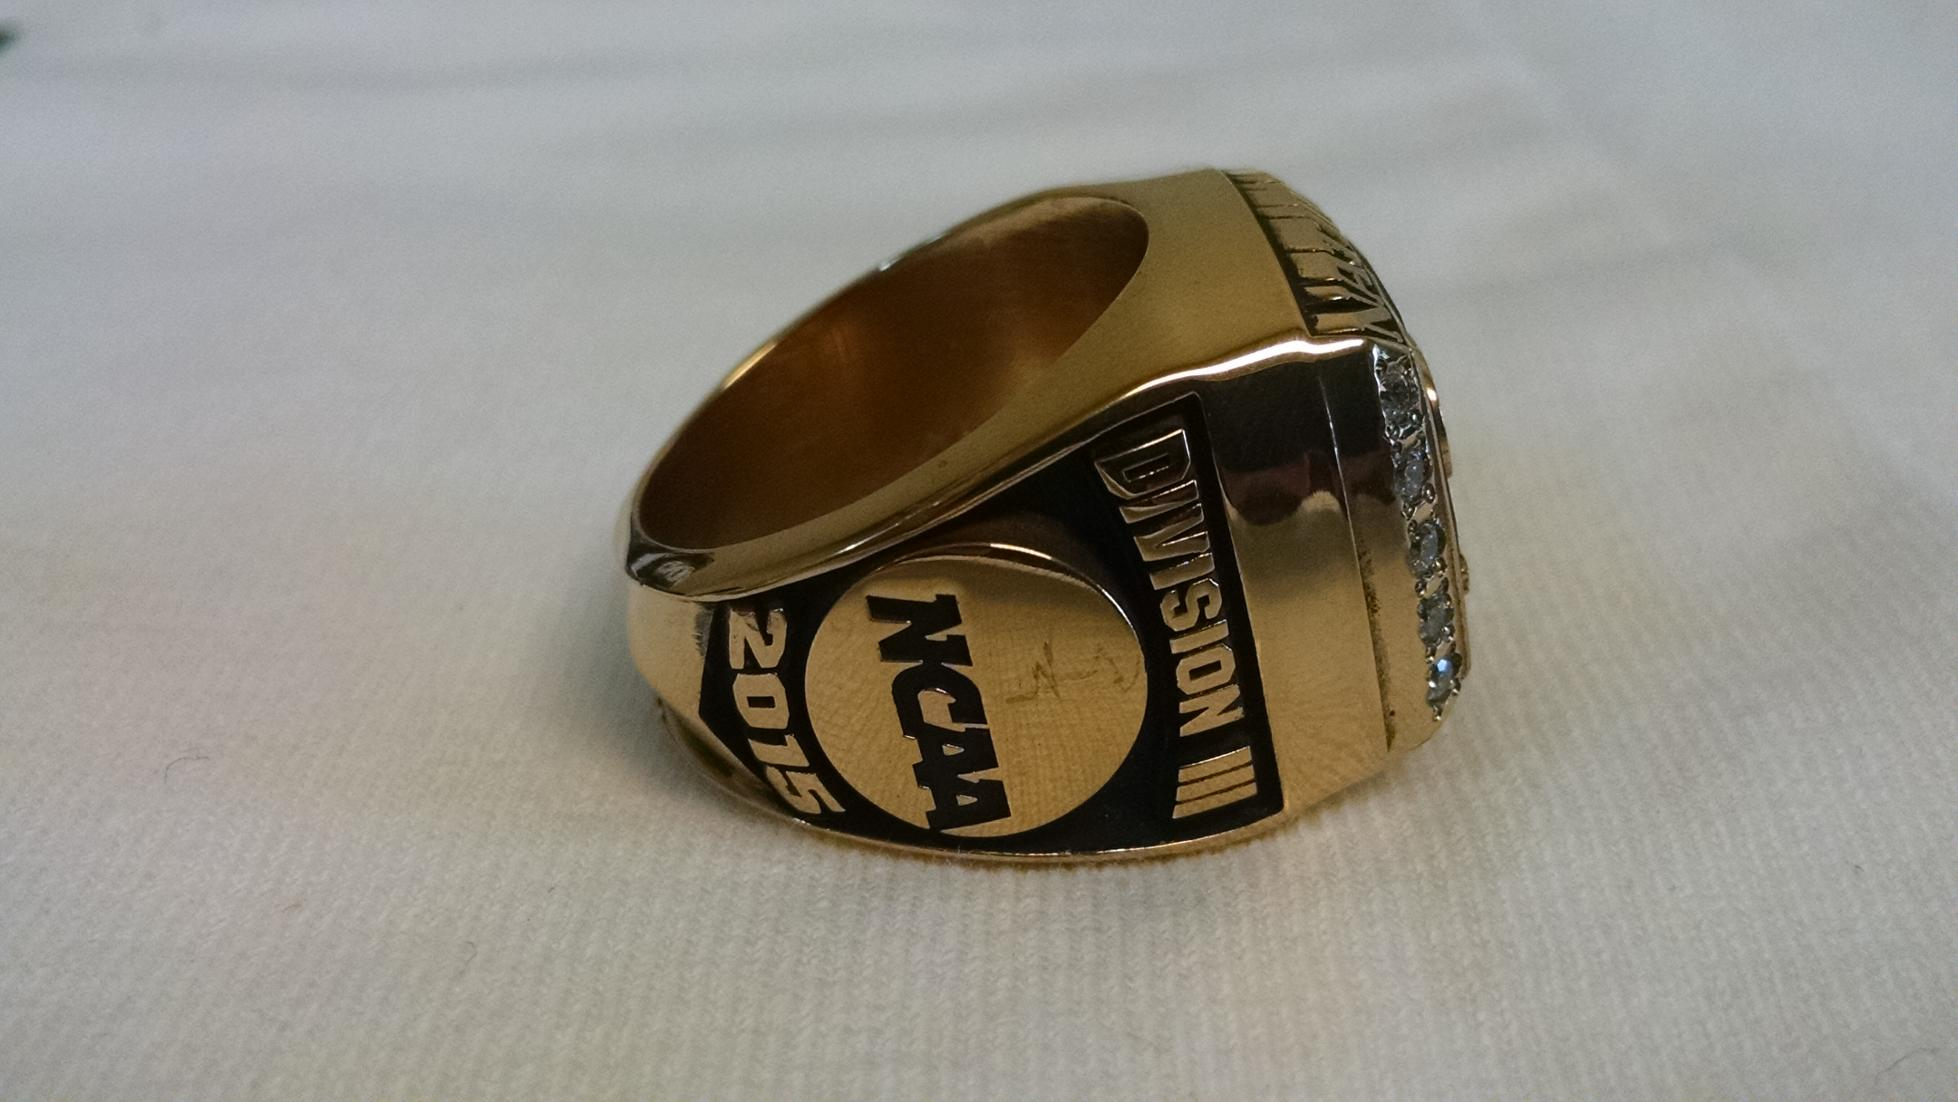 super southpaw rings image softball nit usssa win baseball